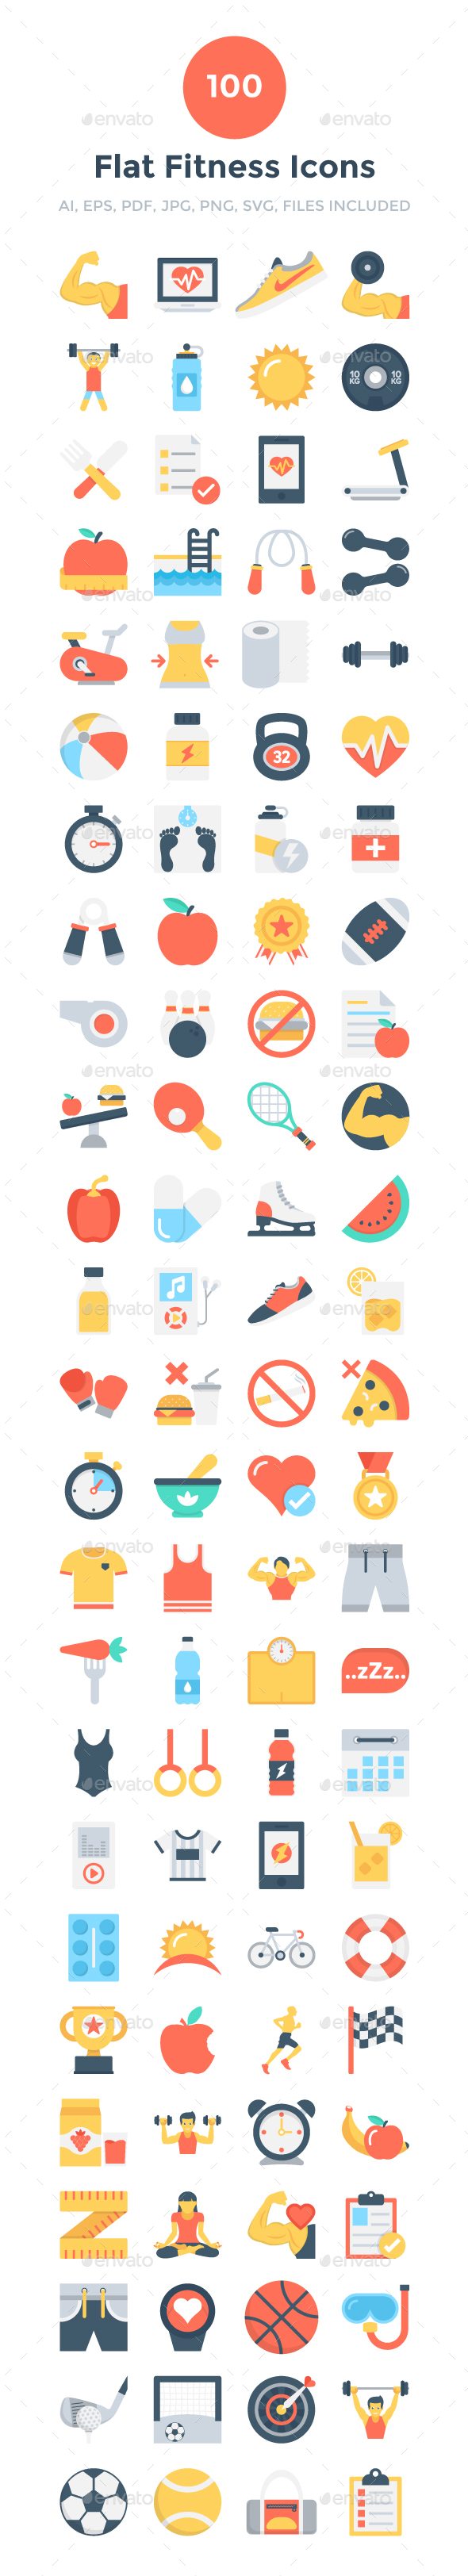 100 Flat Fitness Icons - Icons